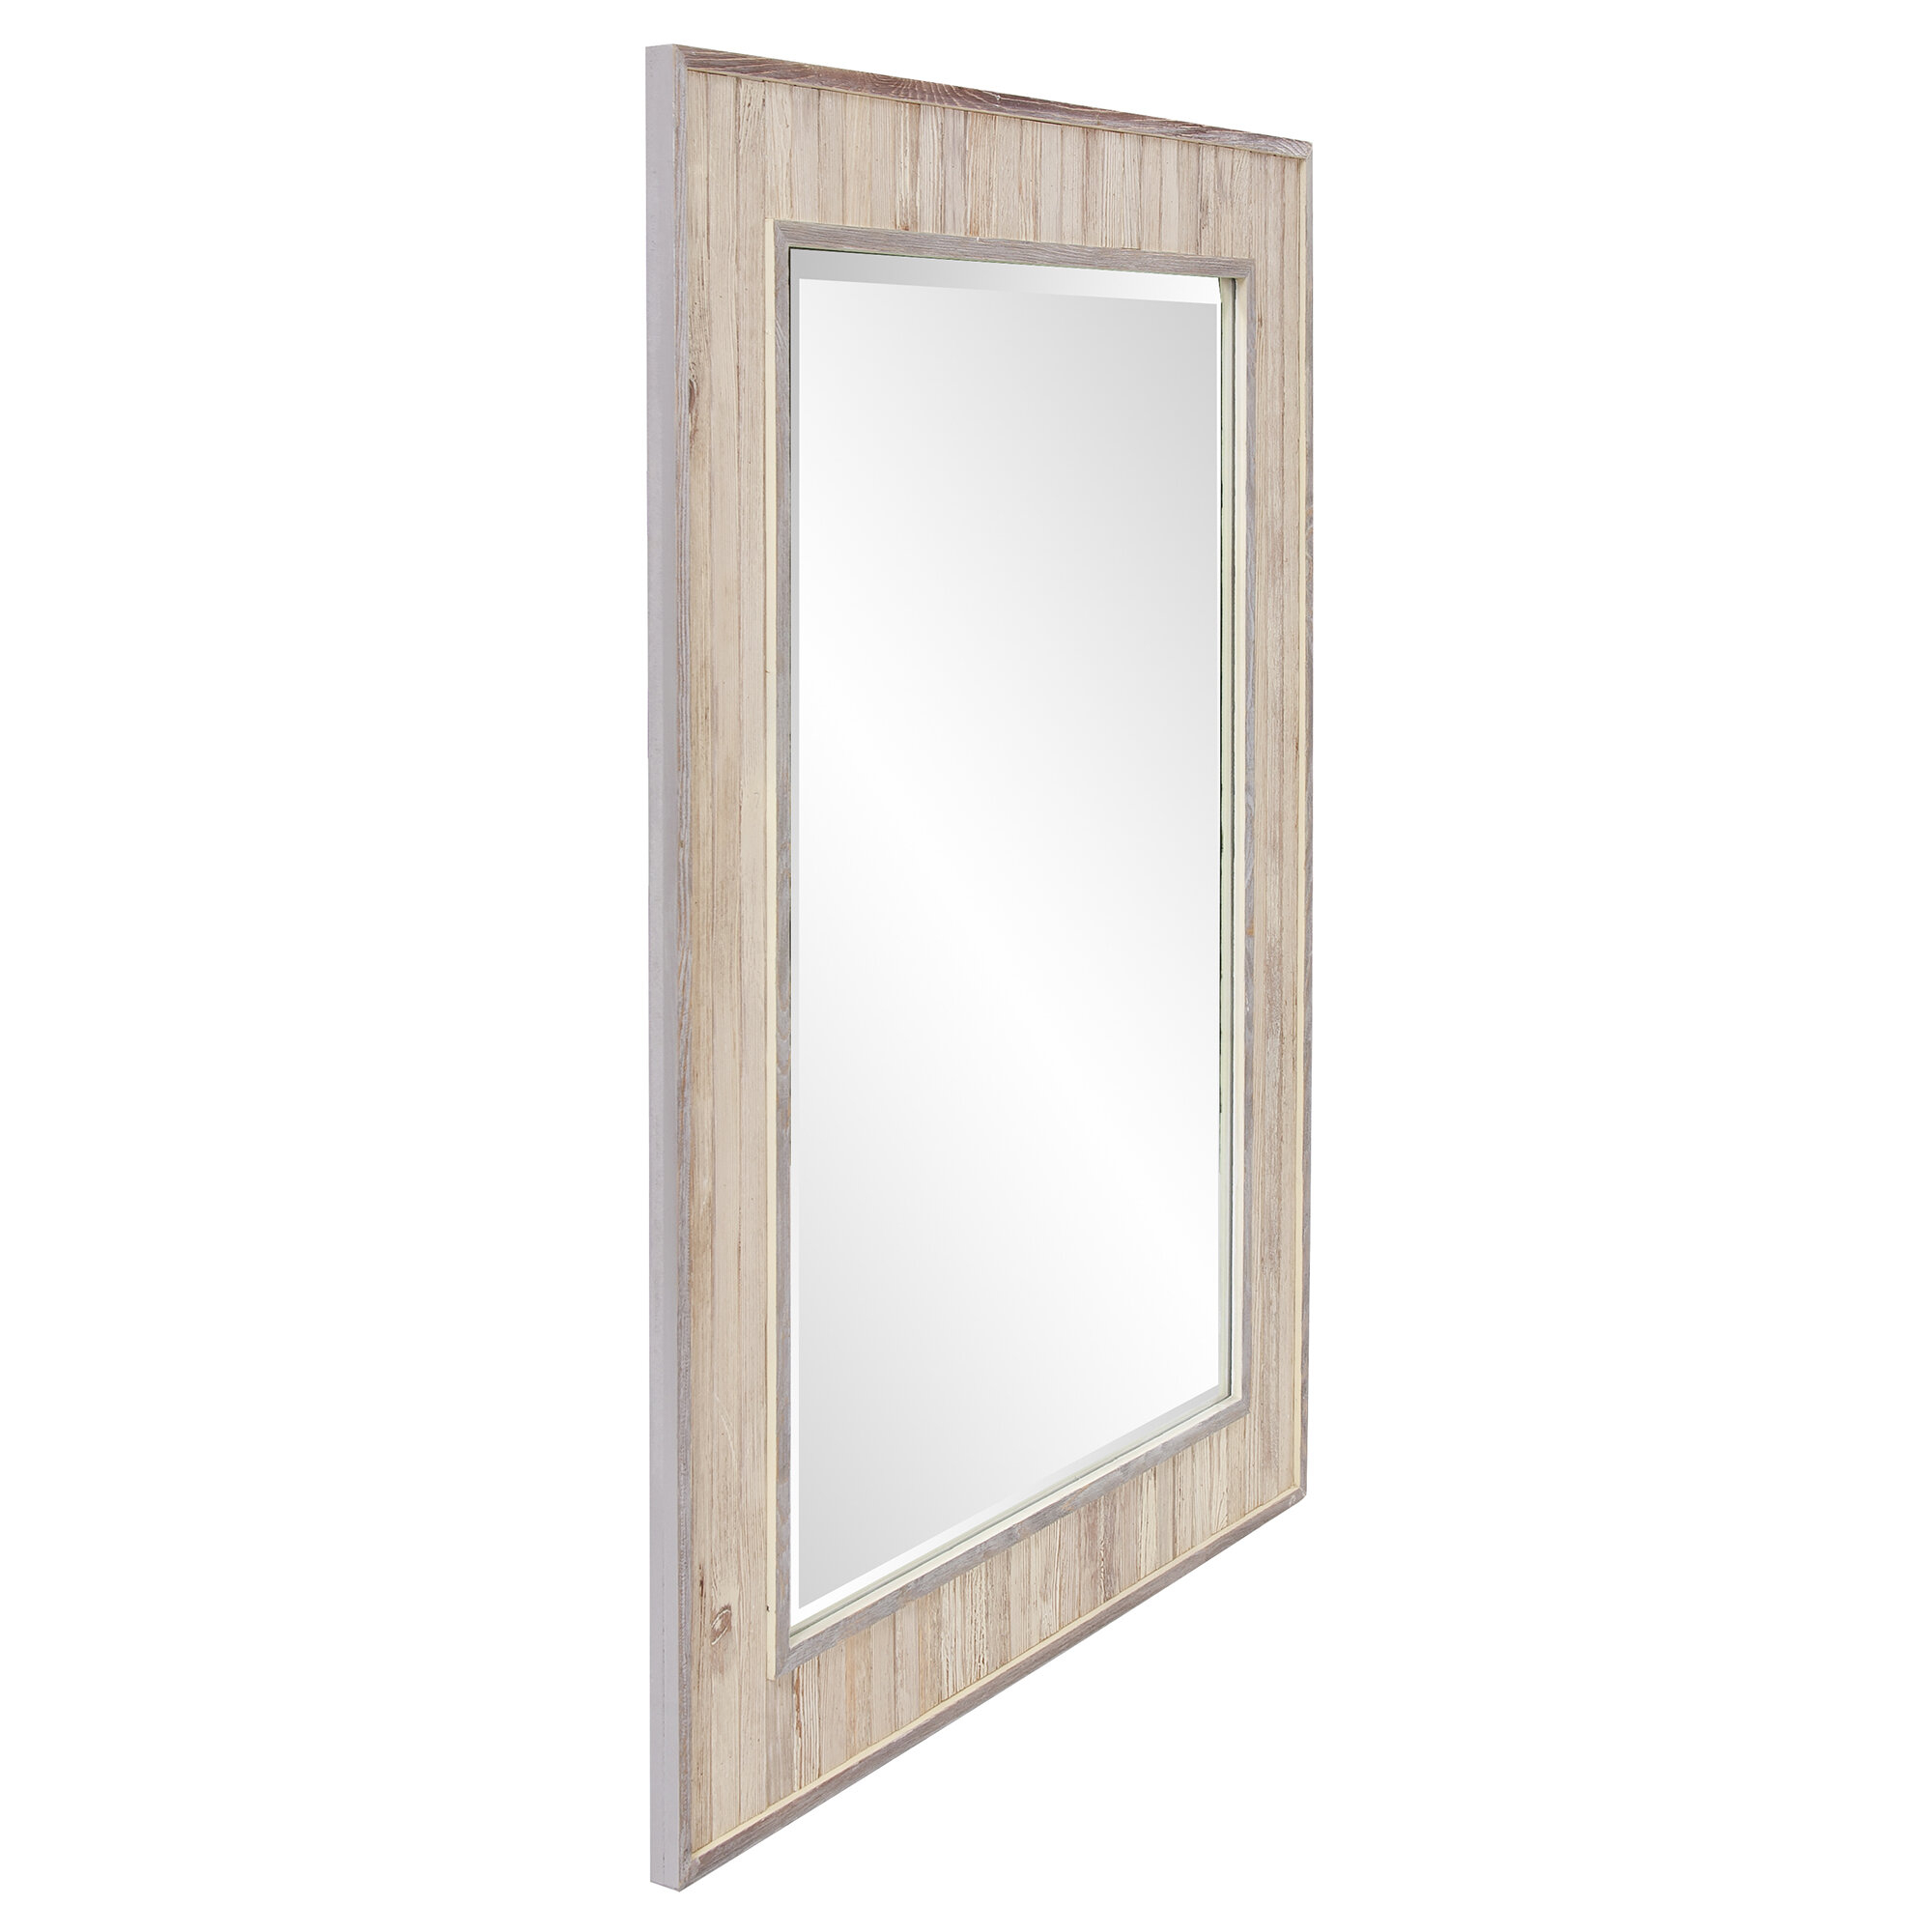 Farmhouse & Rustic Rosecliff Heights Wall & Accent Mirrors Throughout Deniece Sunburst Round Wall Mirrors (View 11 of 30)